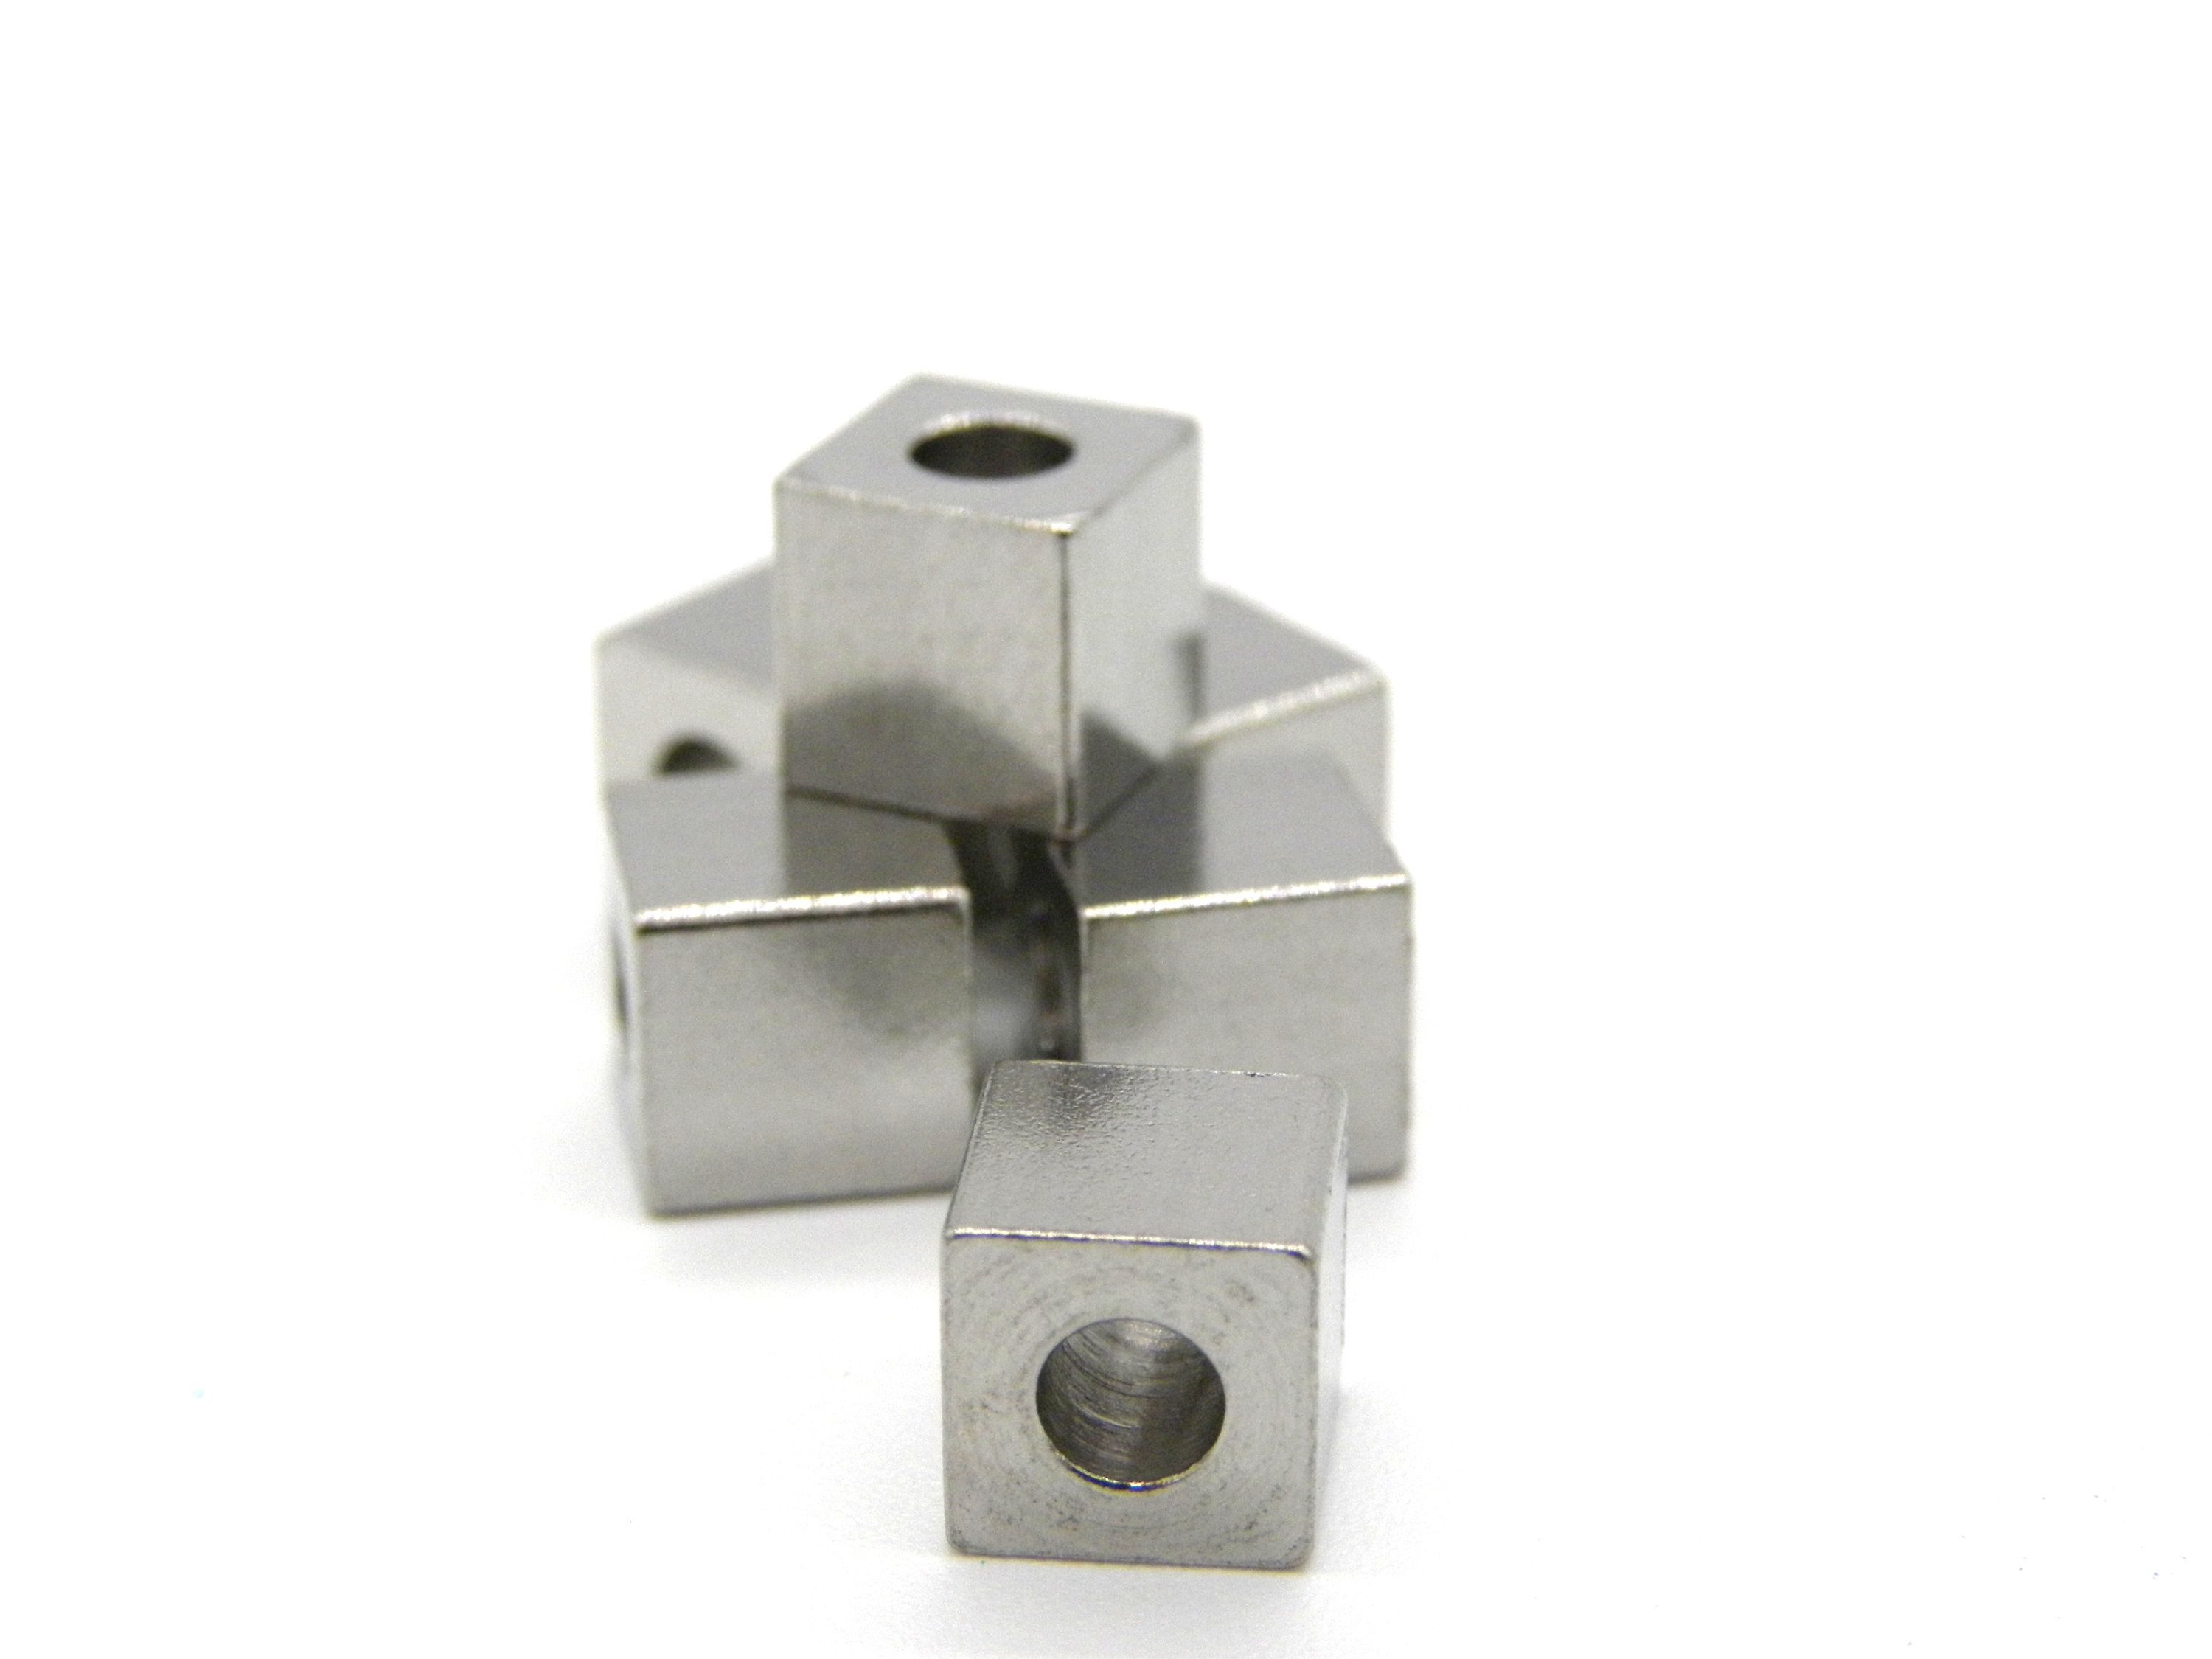 6x6 Mm Medium Cube Solid Stainless Steel Beads 10 Pc Silver Stainless Beaded Material Stainless Steel